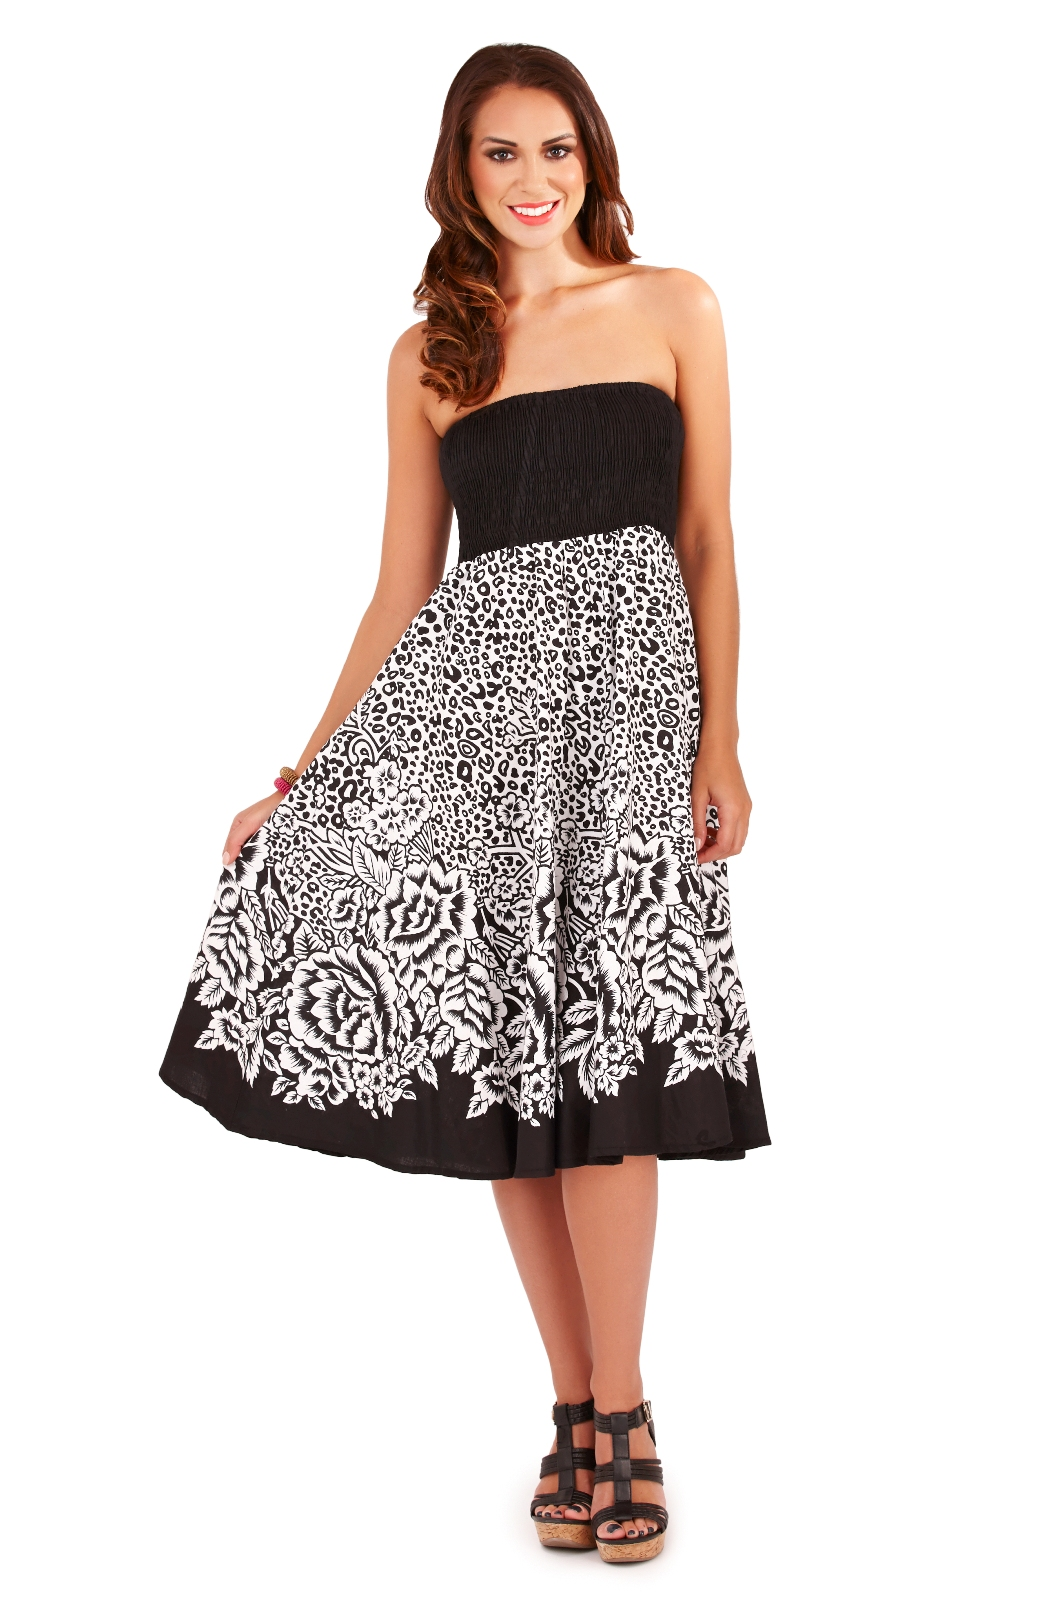 New 2 Piece Set Women Long Dress Party Dresses Cheap Clothes China Top And Skirt Set Dresses Womens ...